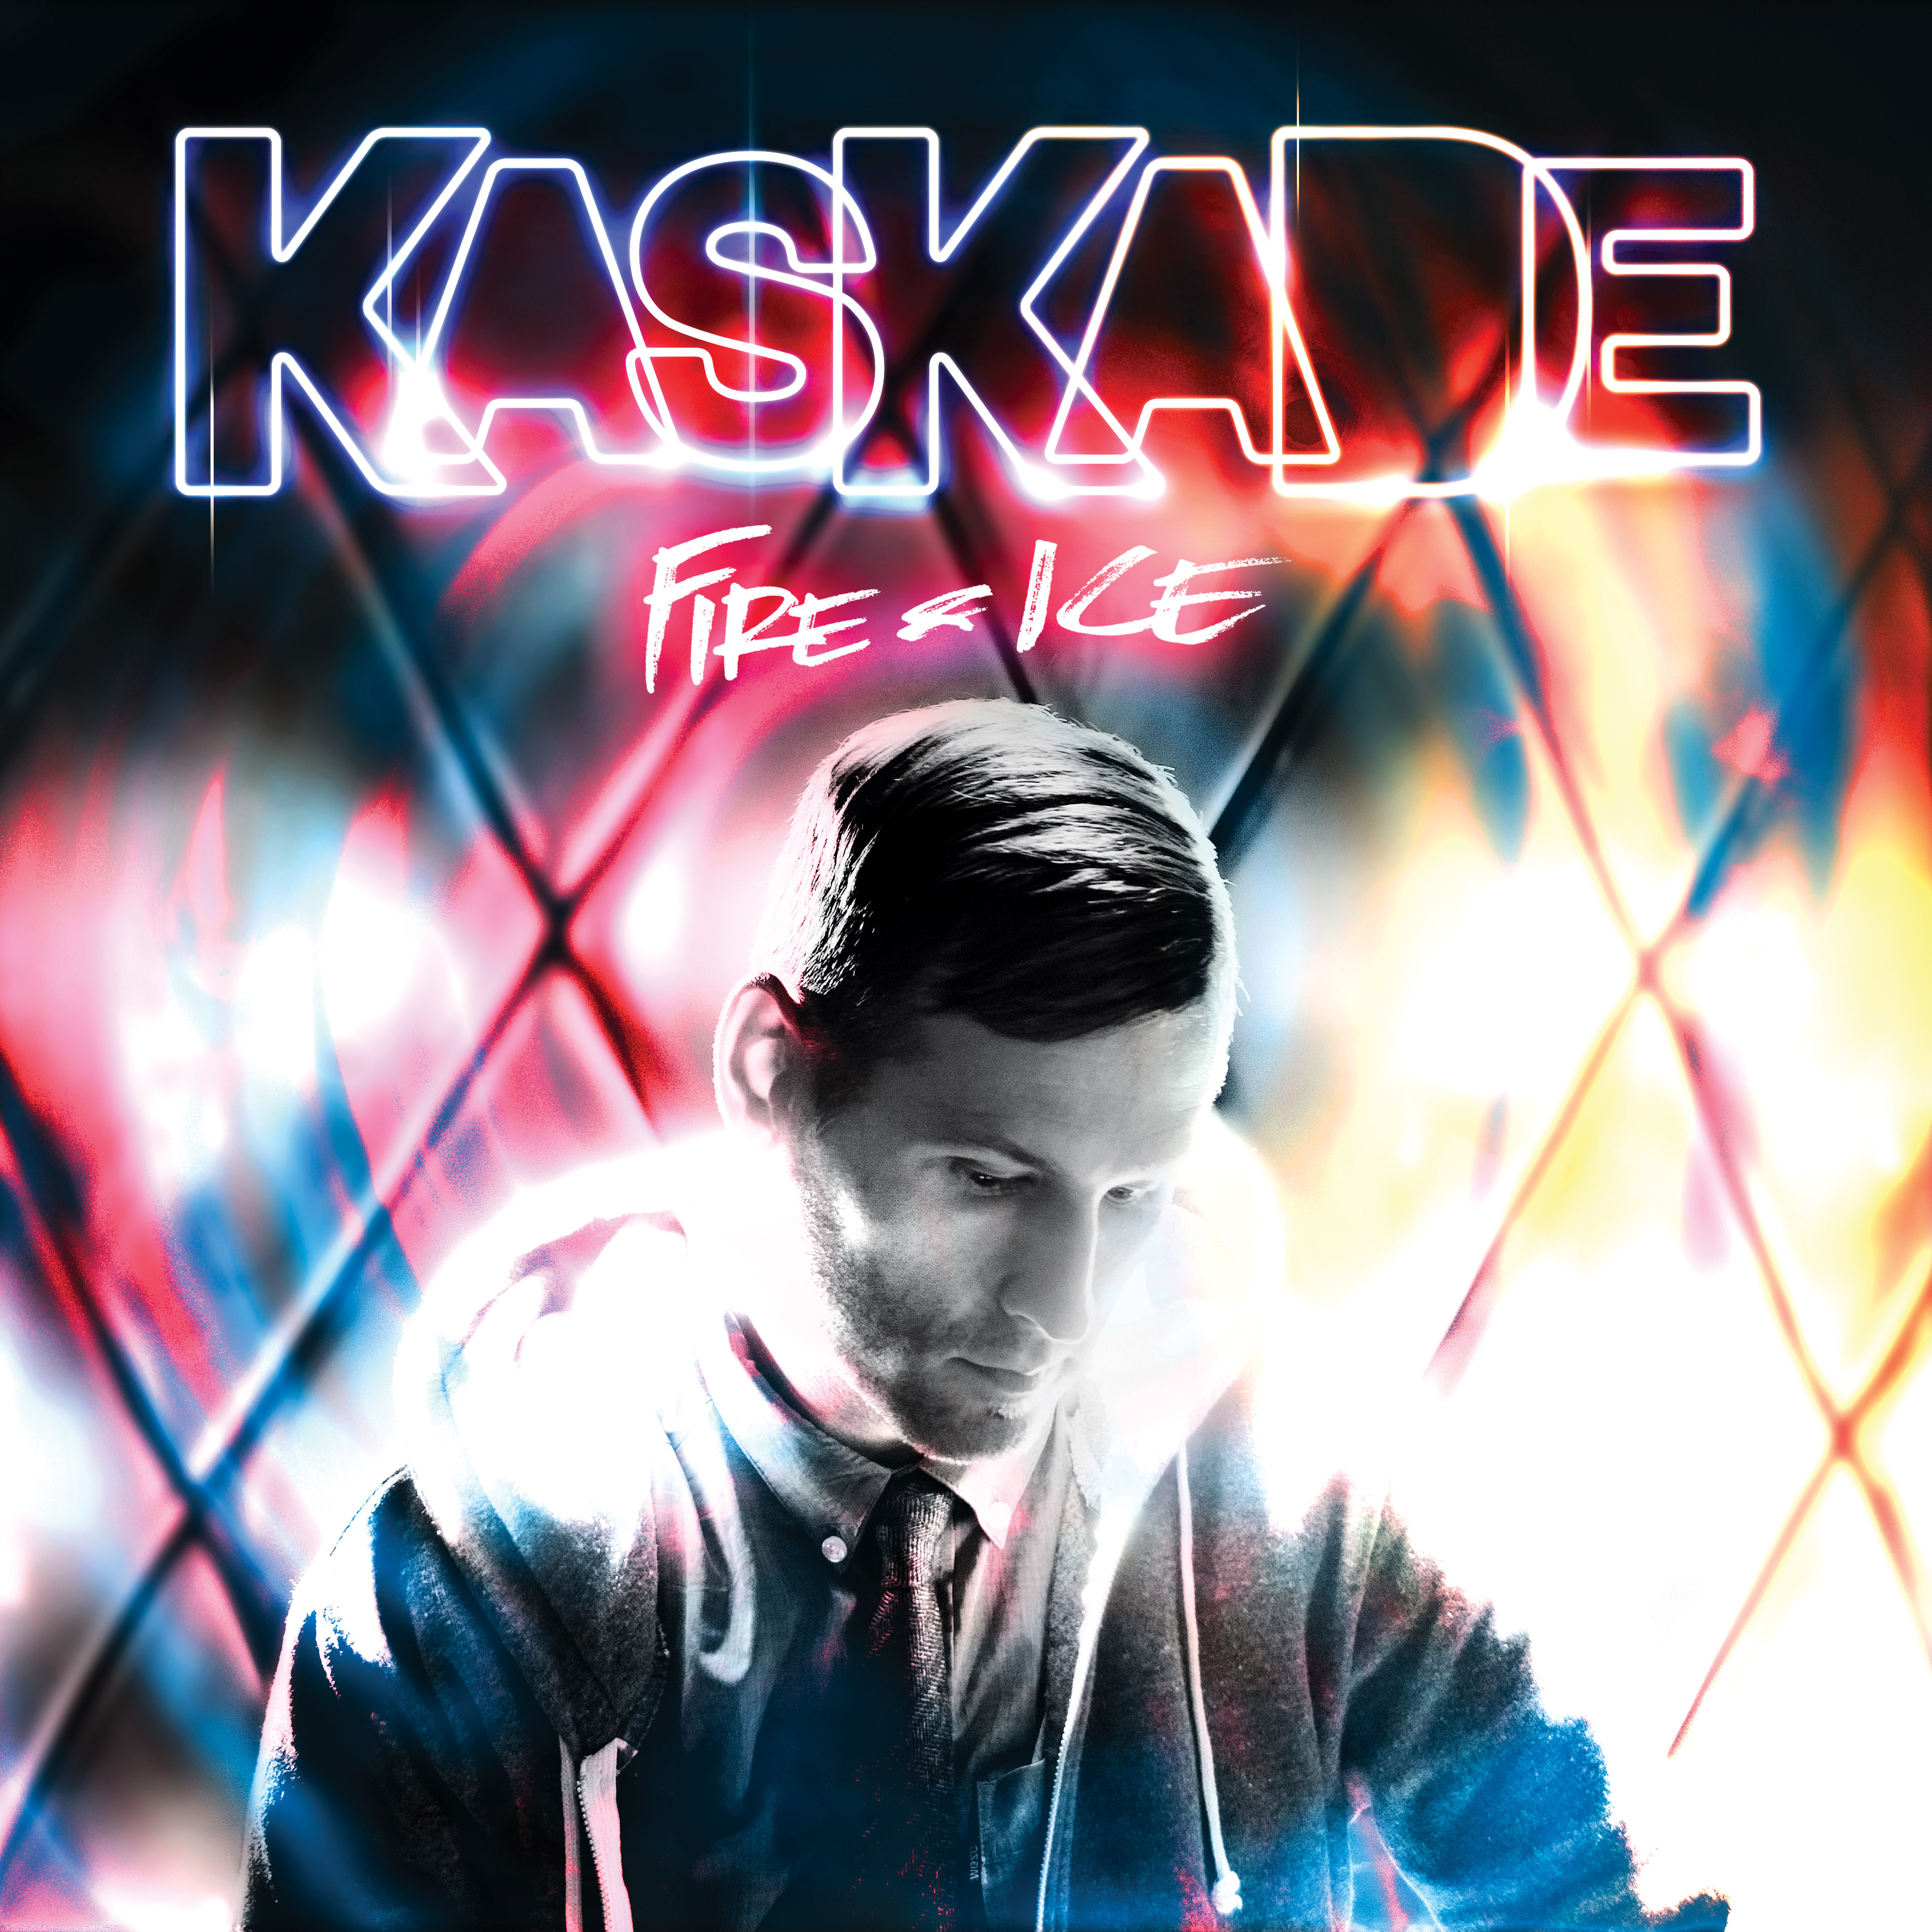 kaskade s fire ice album debuts at 4 on itunes overall album chart. Black Bedroom Furniture Sets. Home Design Ideas